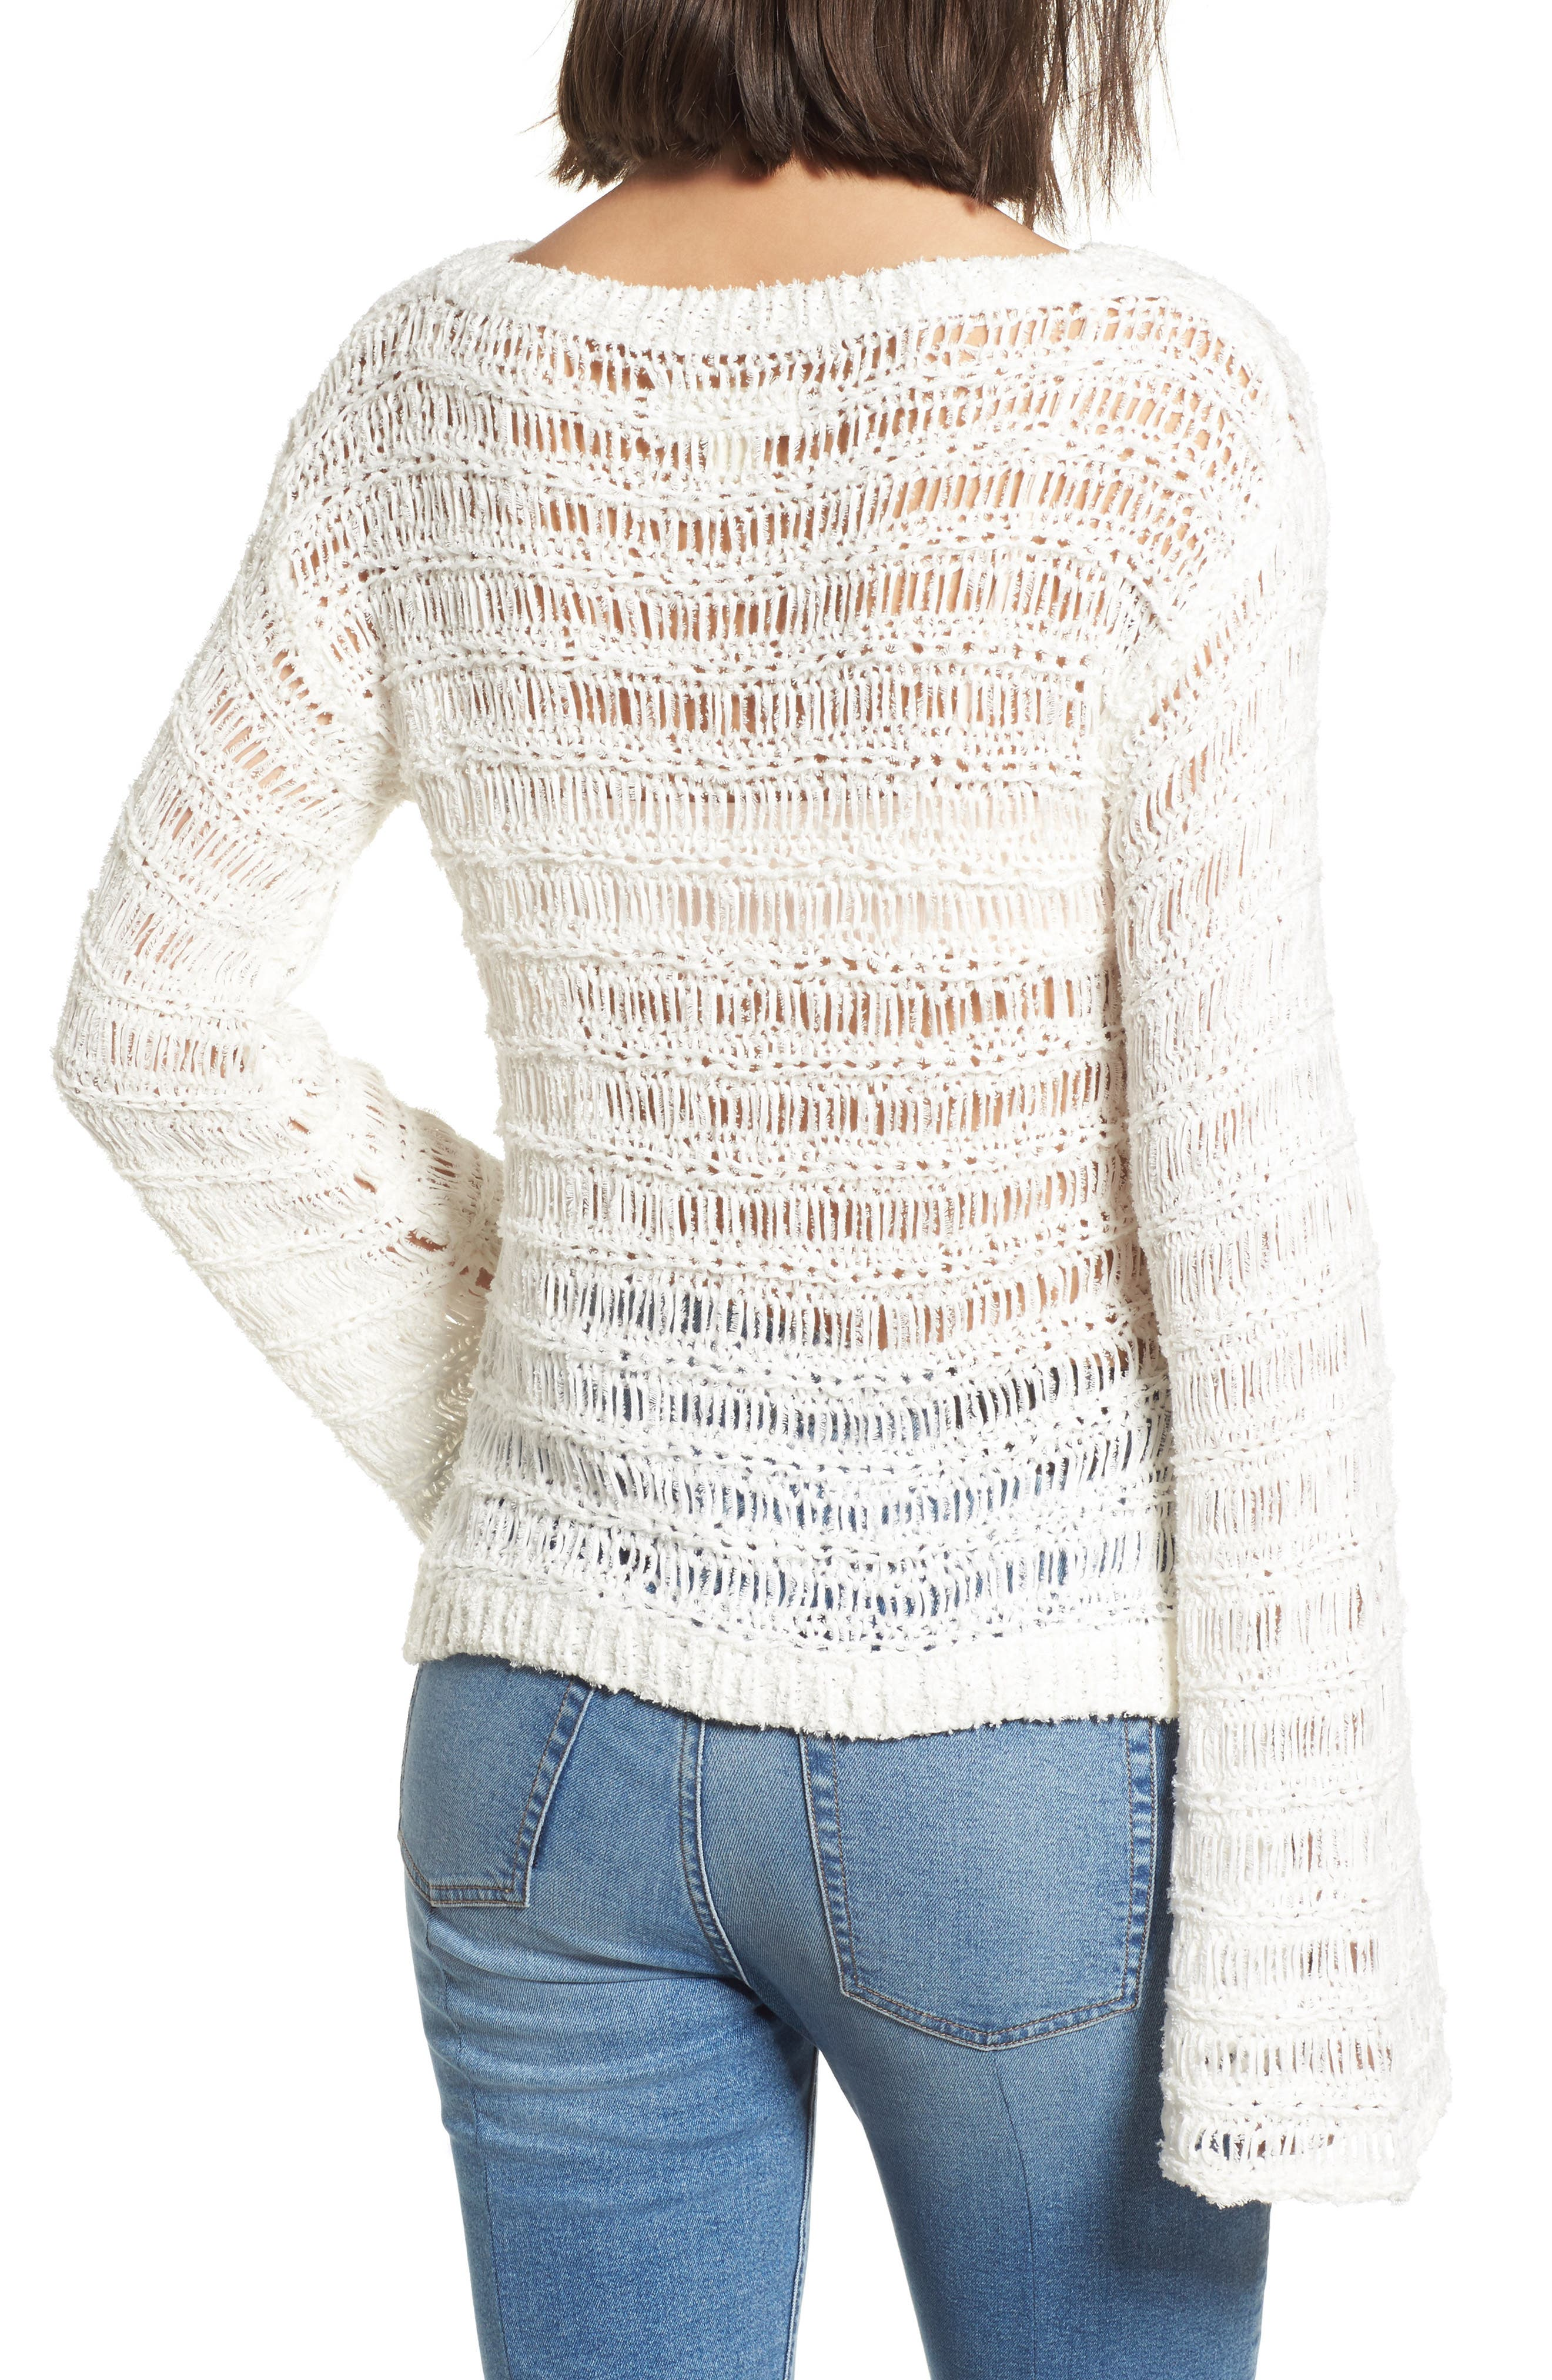 Ladder Stitch Sweater,                             Alternate thumbnail 2, color,                             900